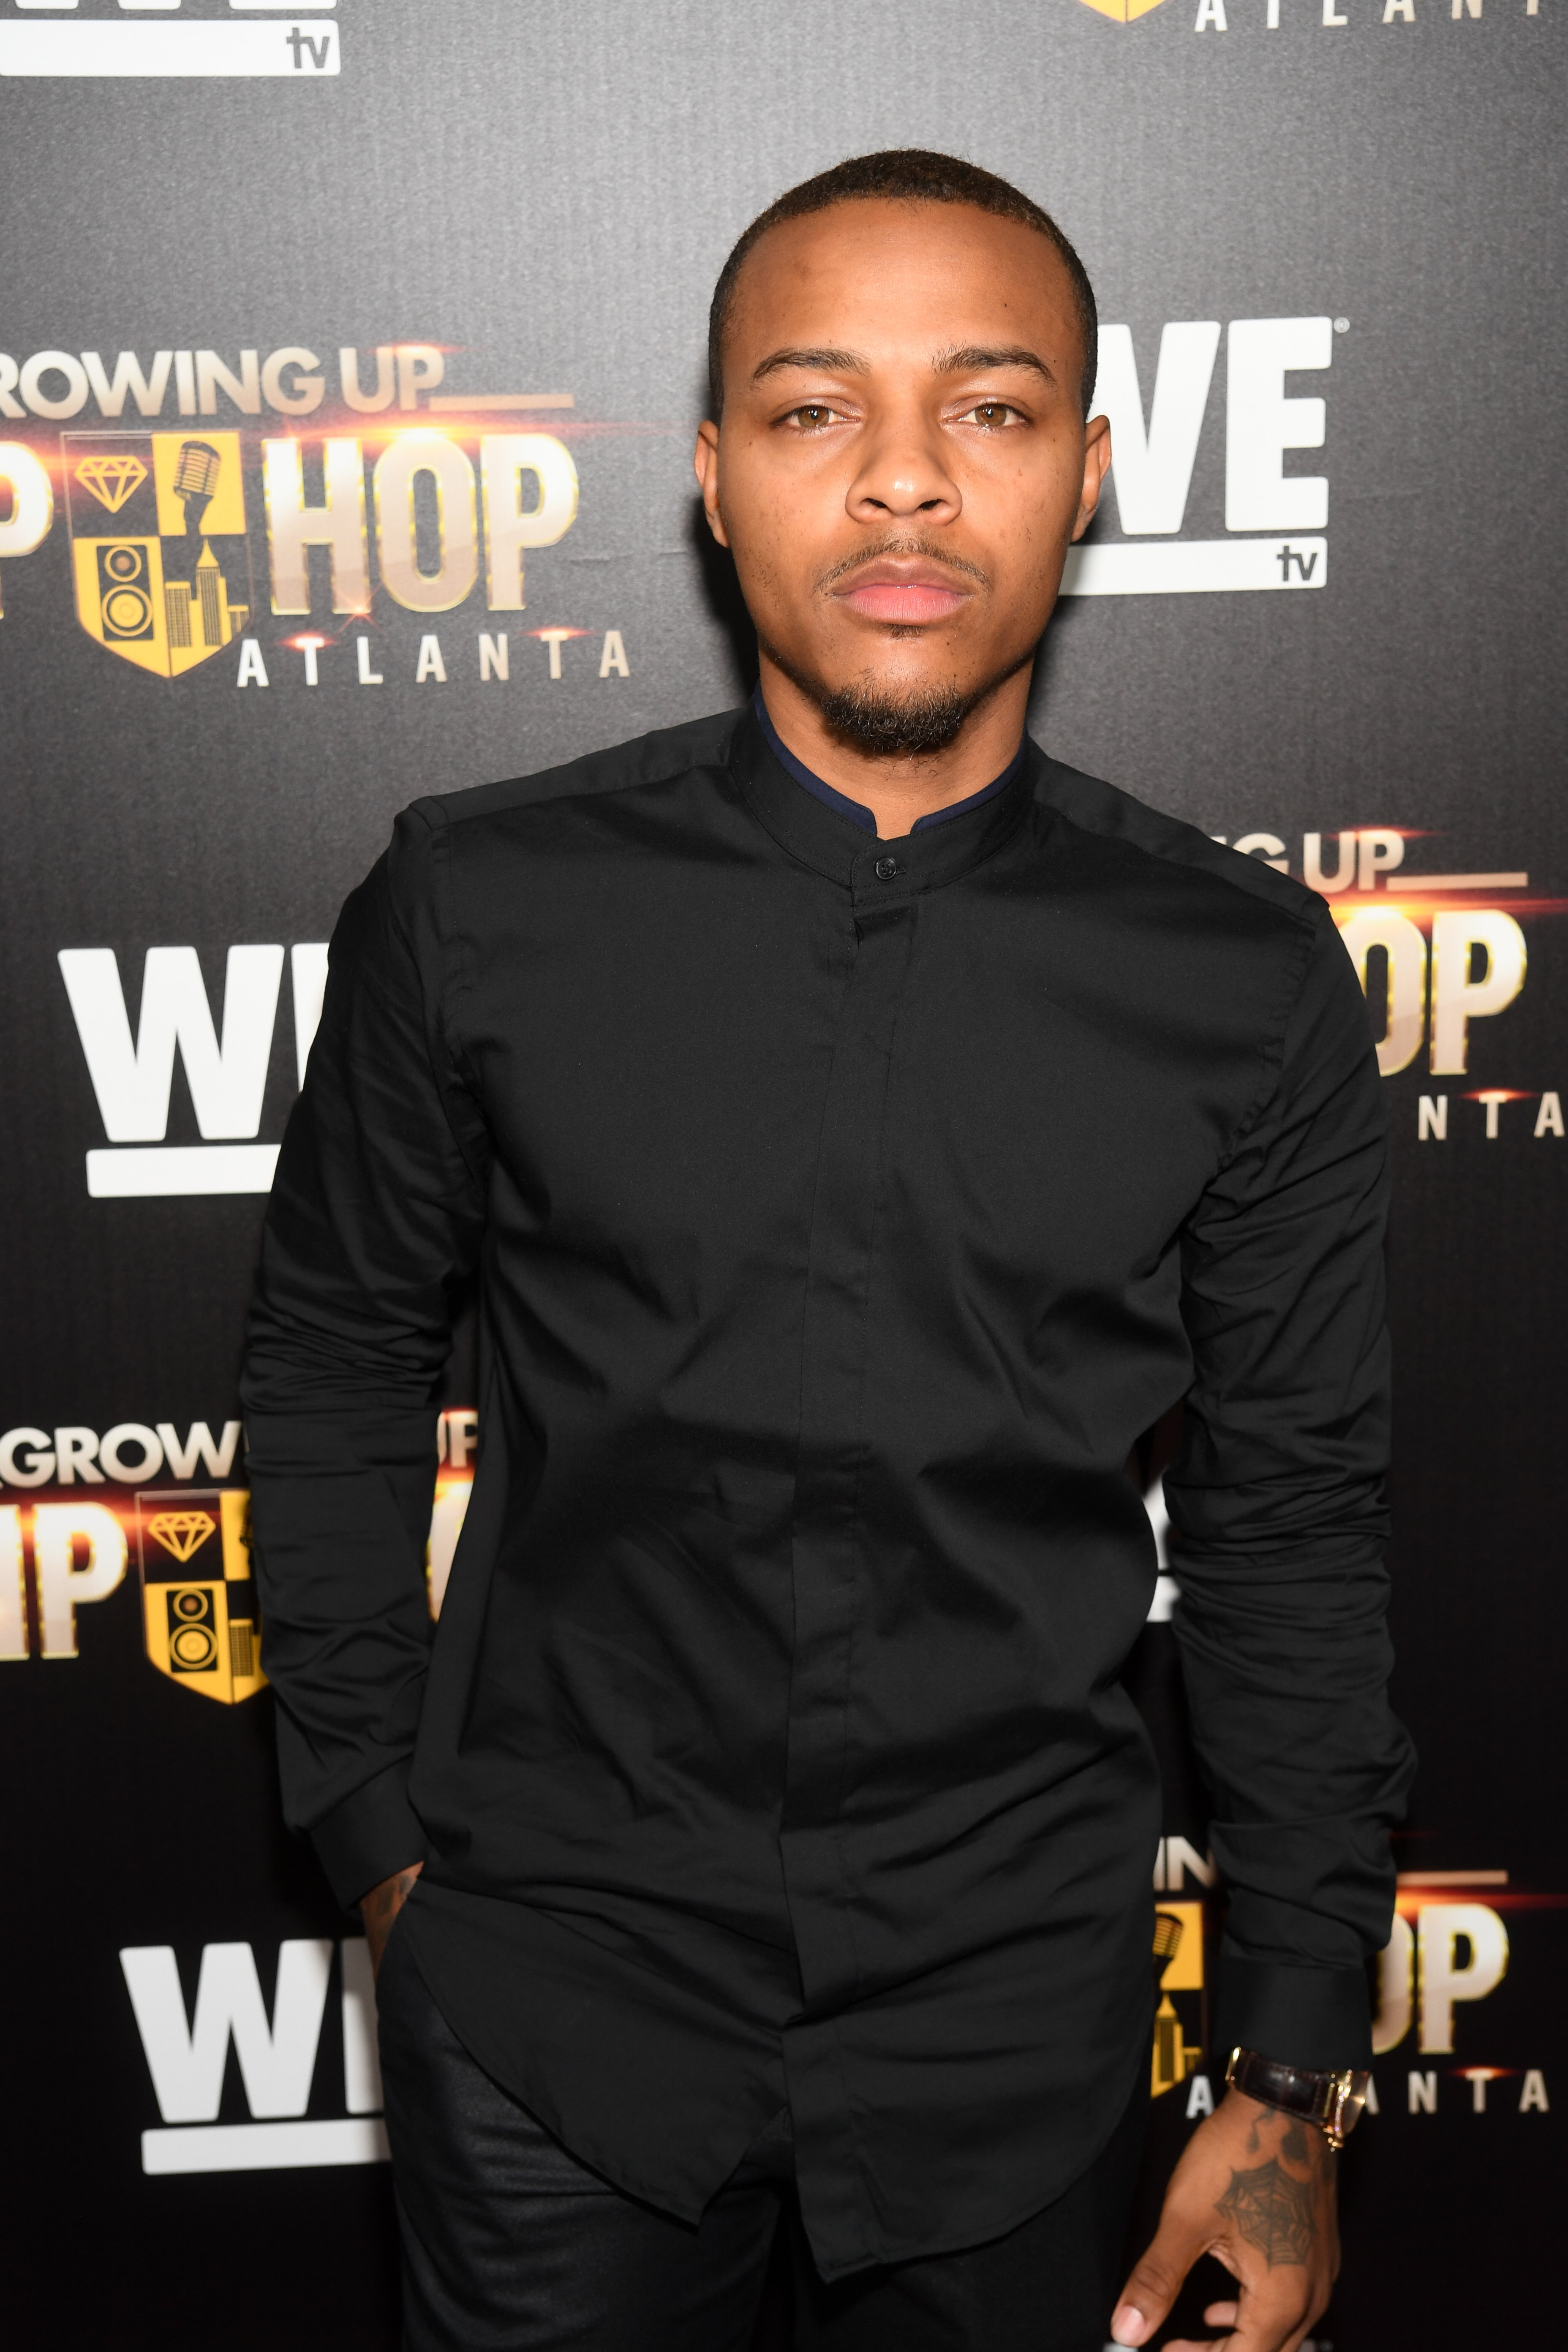 """Bow Wow at the WE TV's """"Growing Up Hip Hop: Atlanta"""" premiere screening event on May 16, 2017 in New York City.   Photo: Getty Images"""